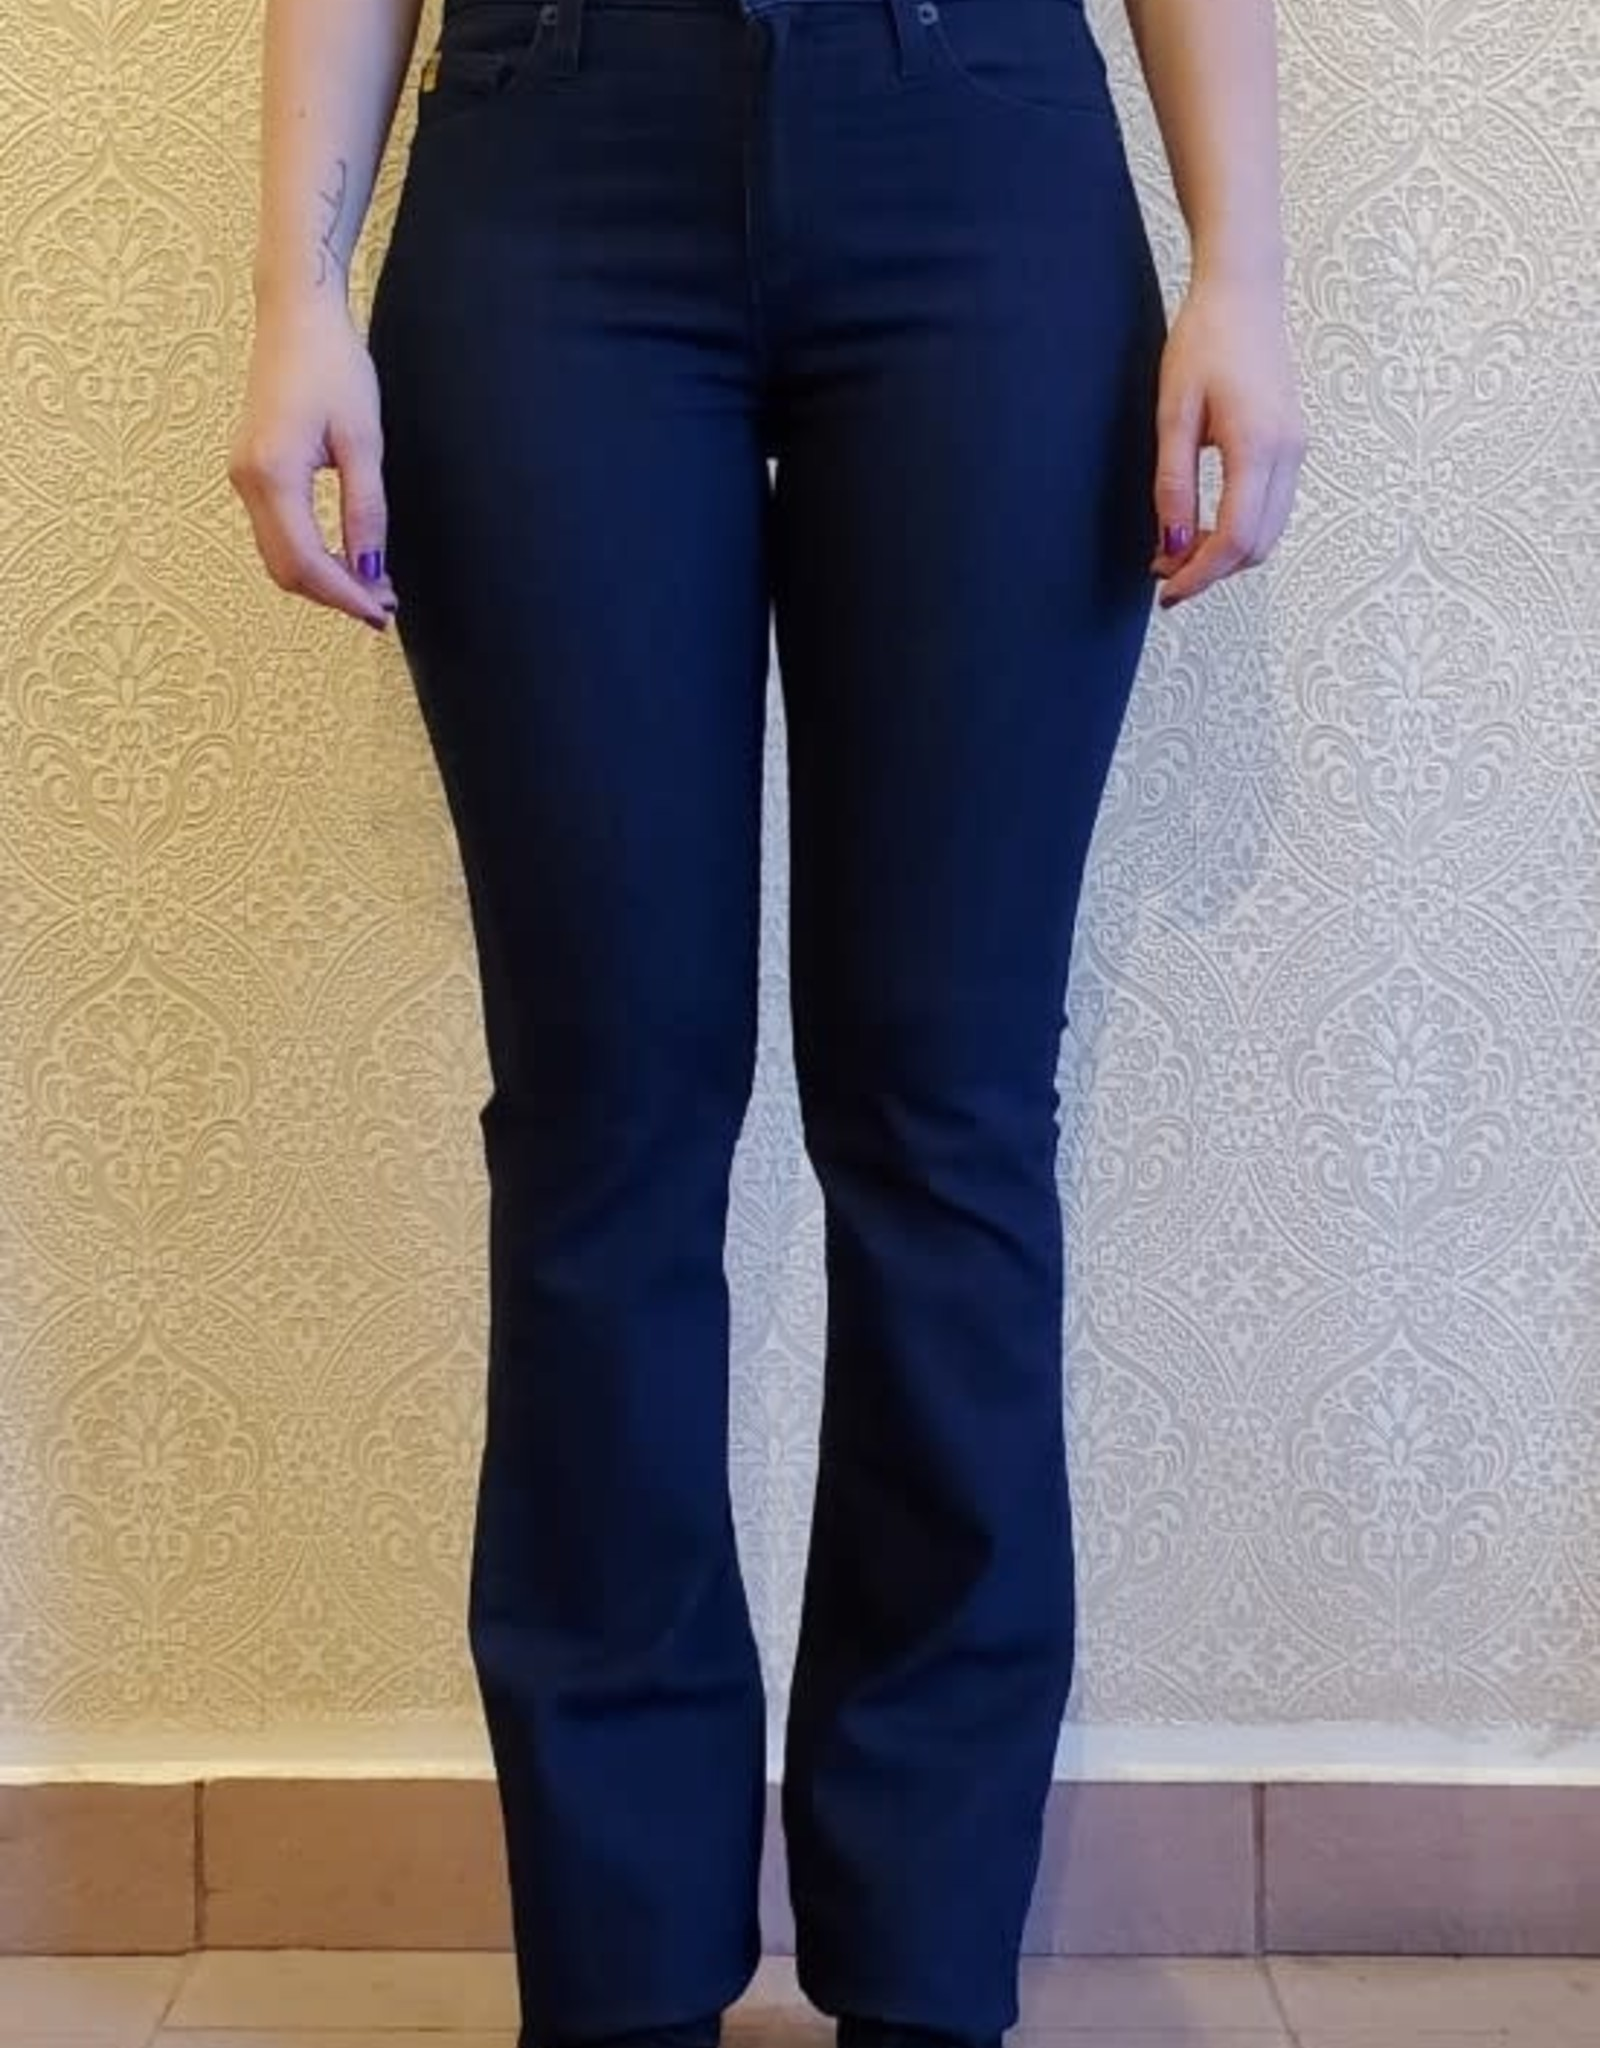 Yoga Jeans High Rise Bootcut 1165 Rinse Indigo Yoga Jeans